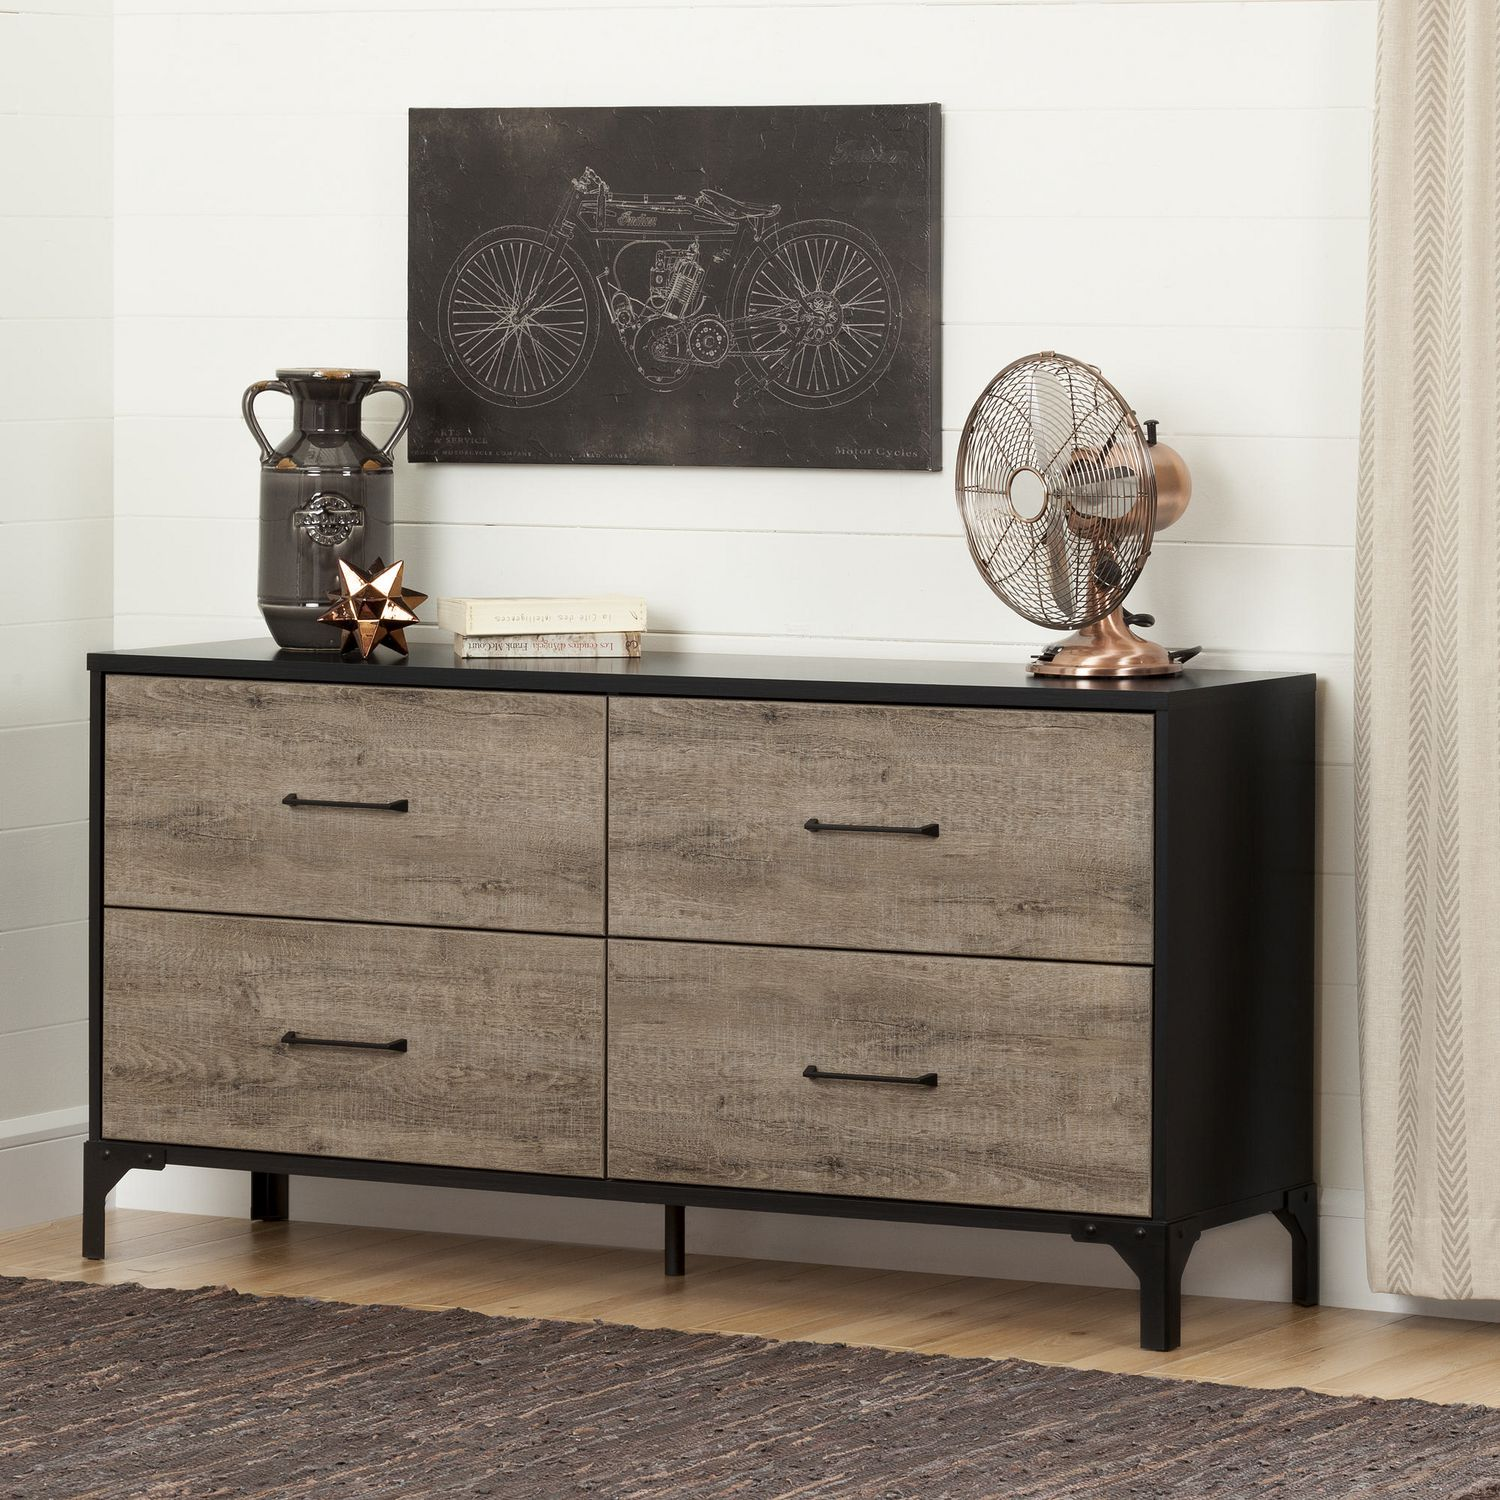 c83117d6d45 South Shore Valet Weathered Oak and Ebony 4-Drawer Double Dresser ...